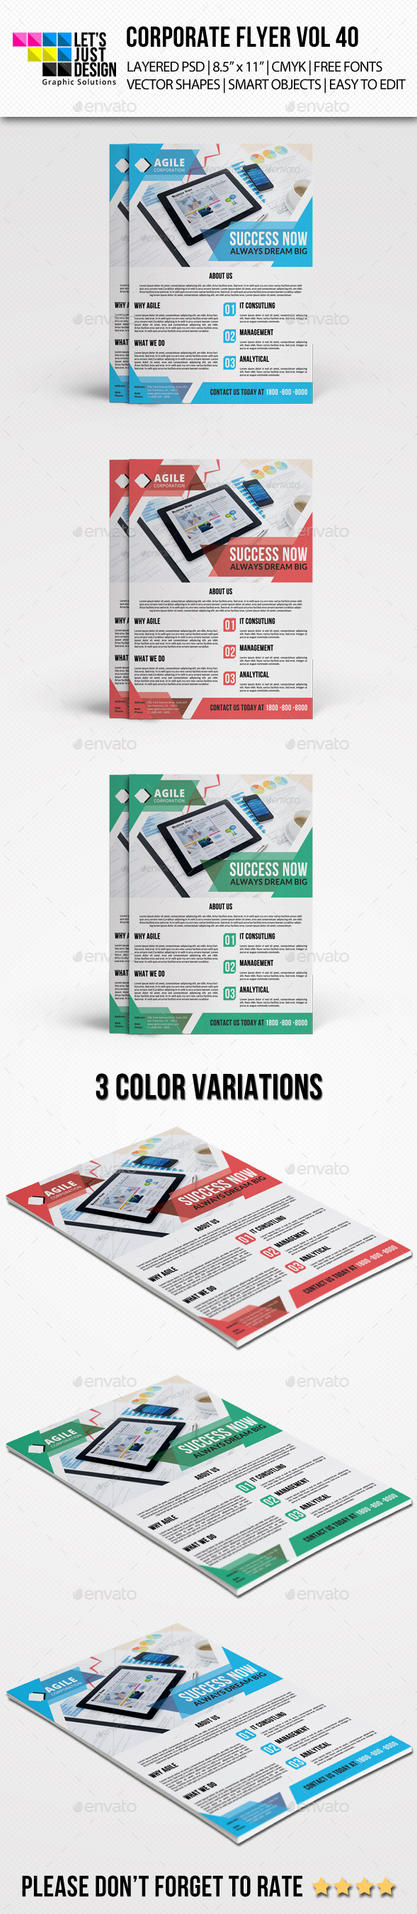 Corporate Flyer Template Vol 40 by jasonmendes